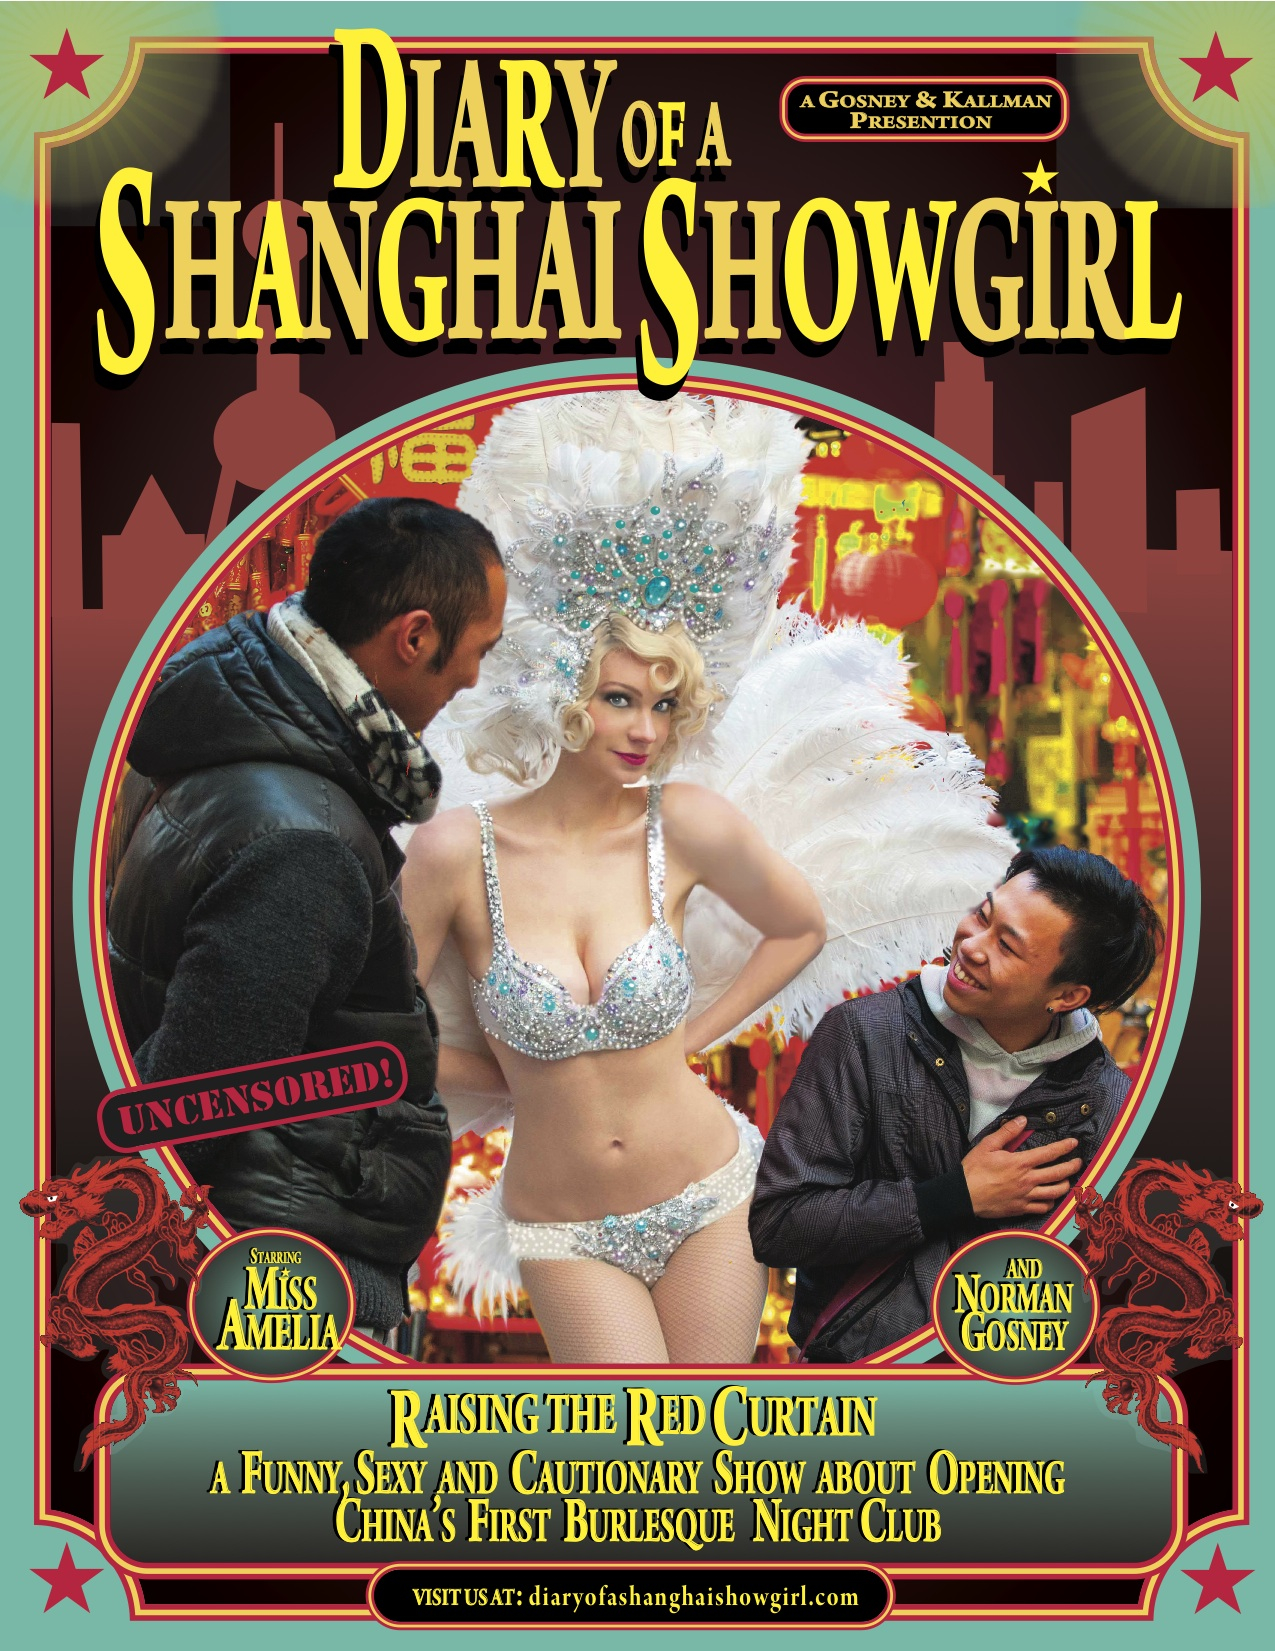 Diary of a Shanghai Showgirl. ©Robert Sedo Photography